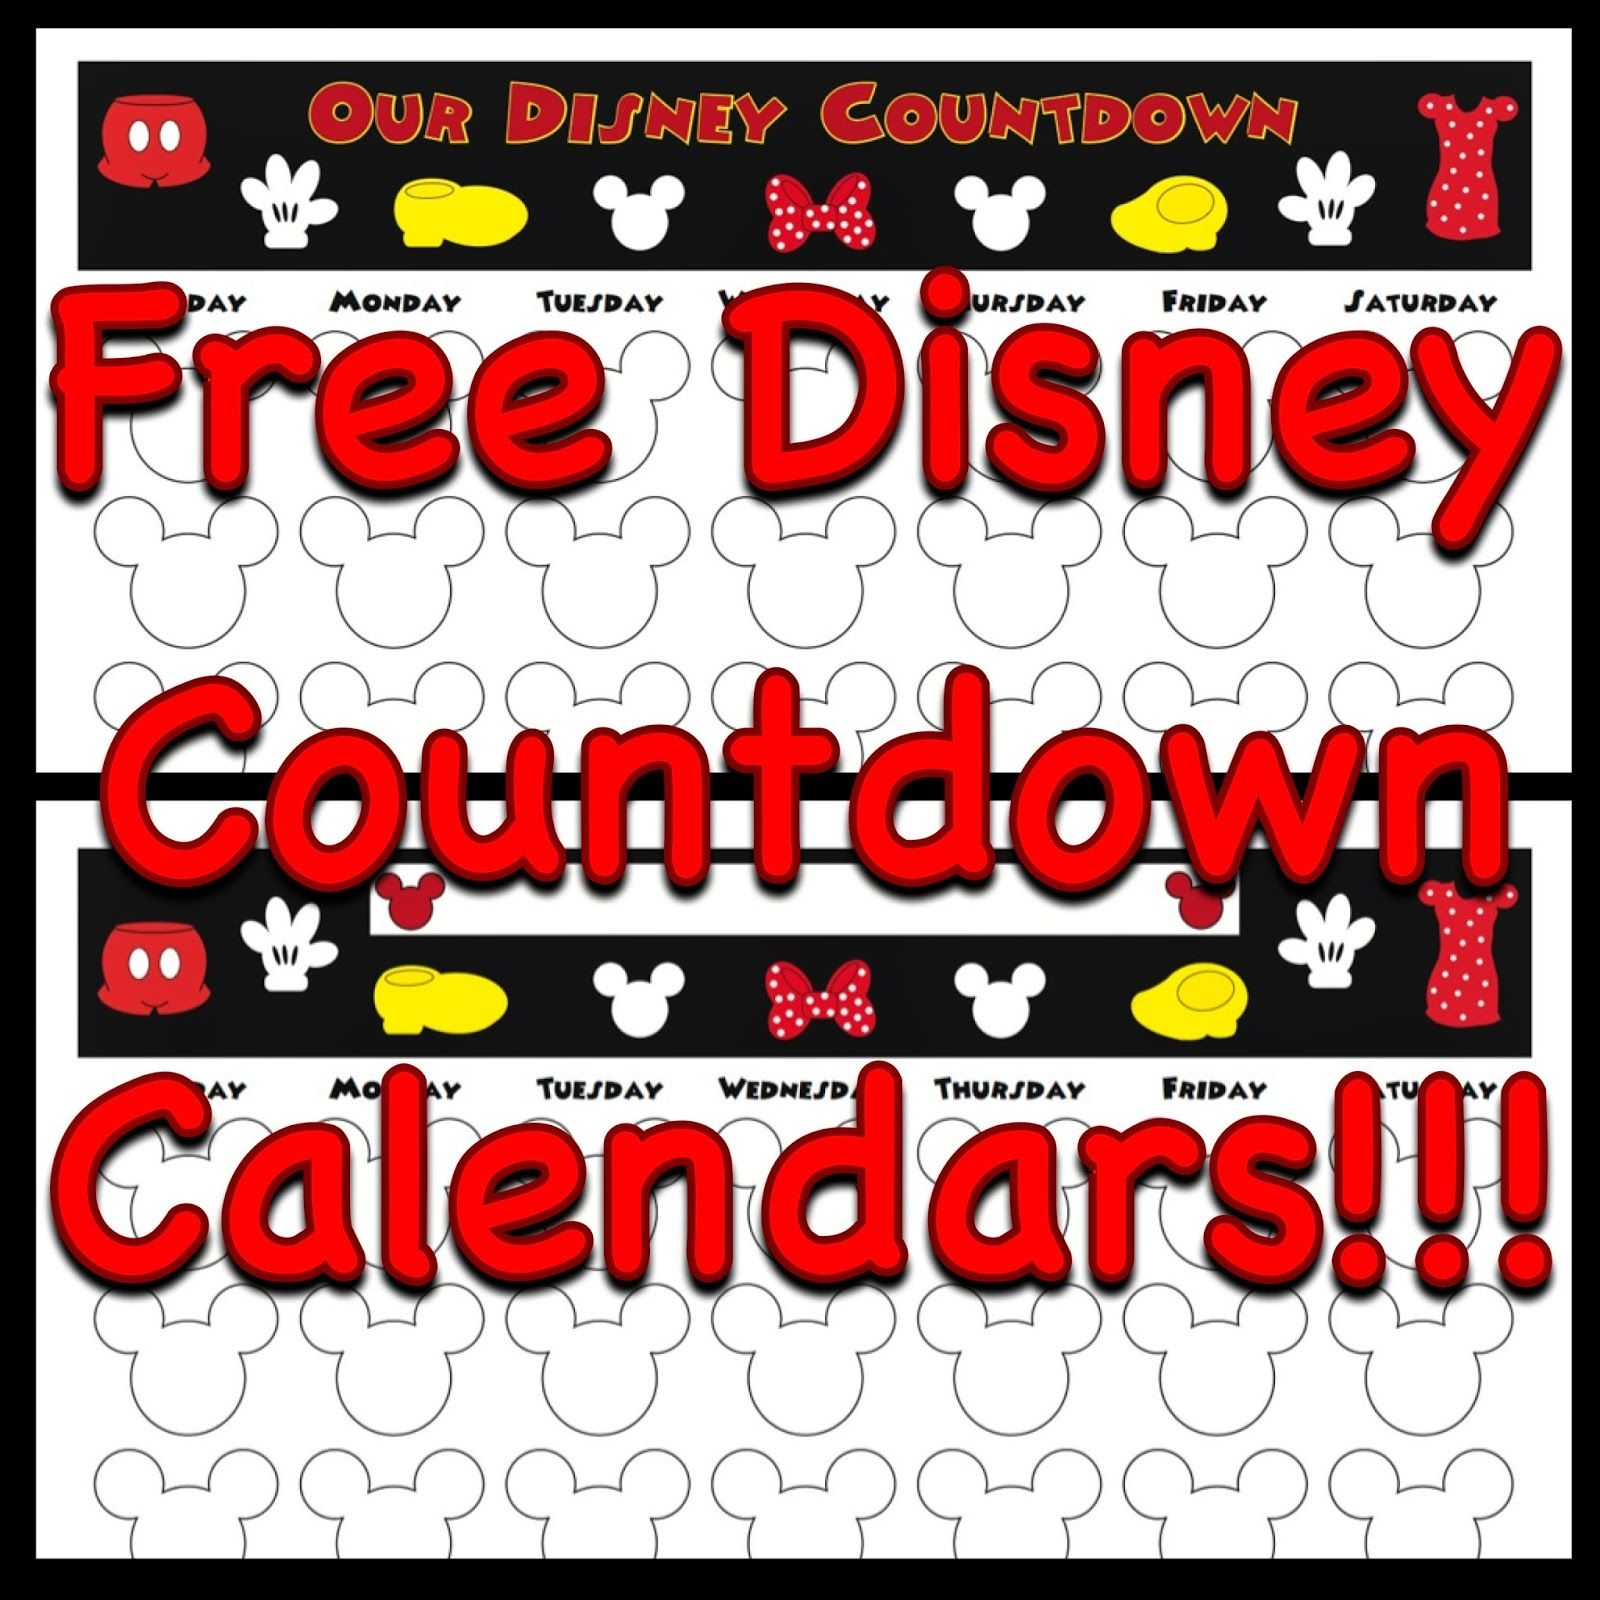 Printable Countdown Calendar For Vacation | Isacl